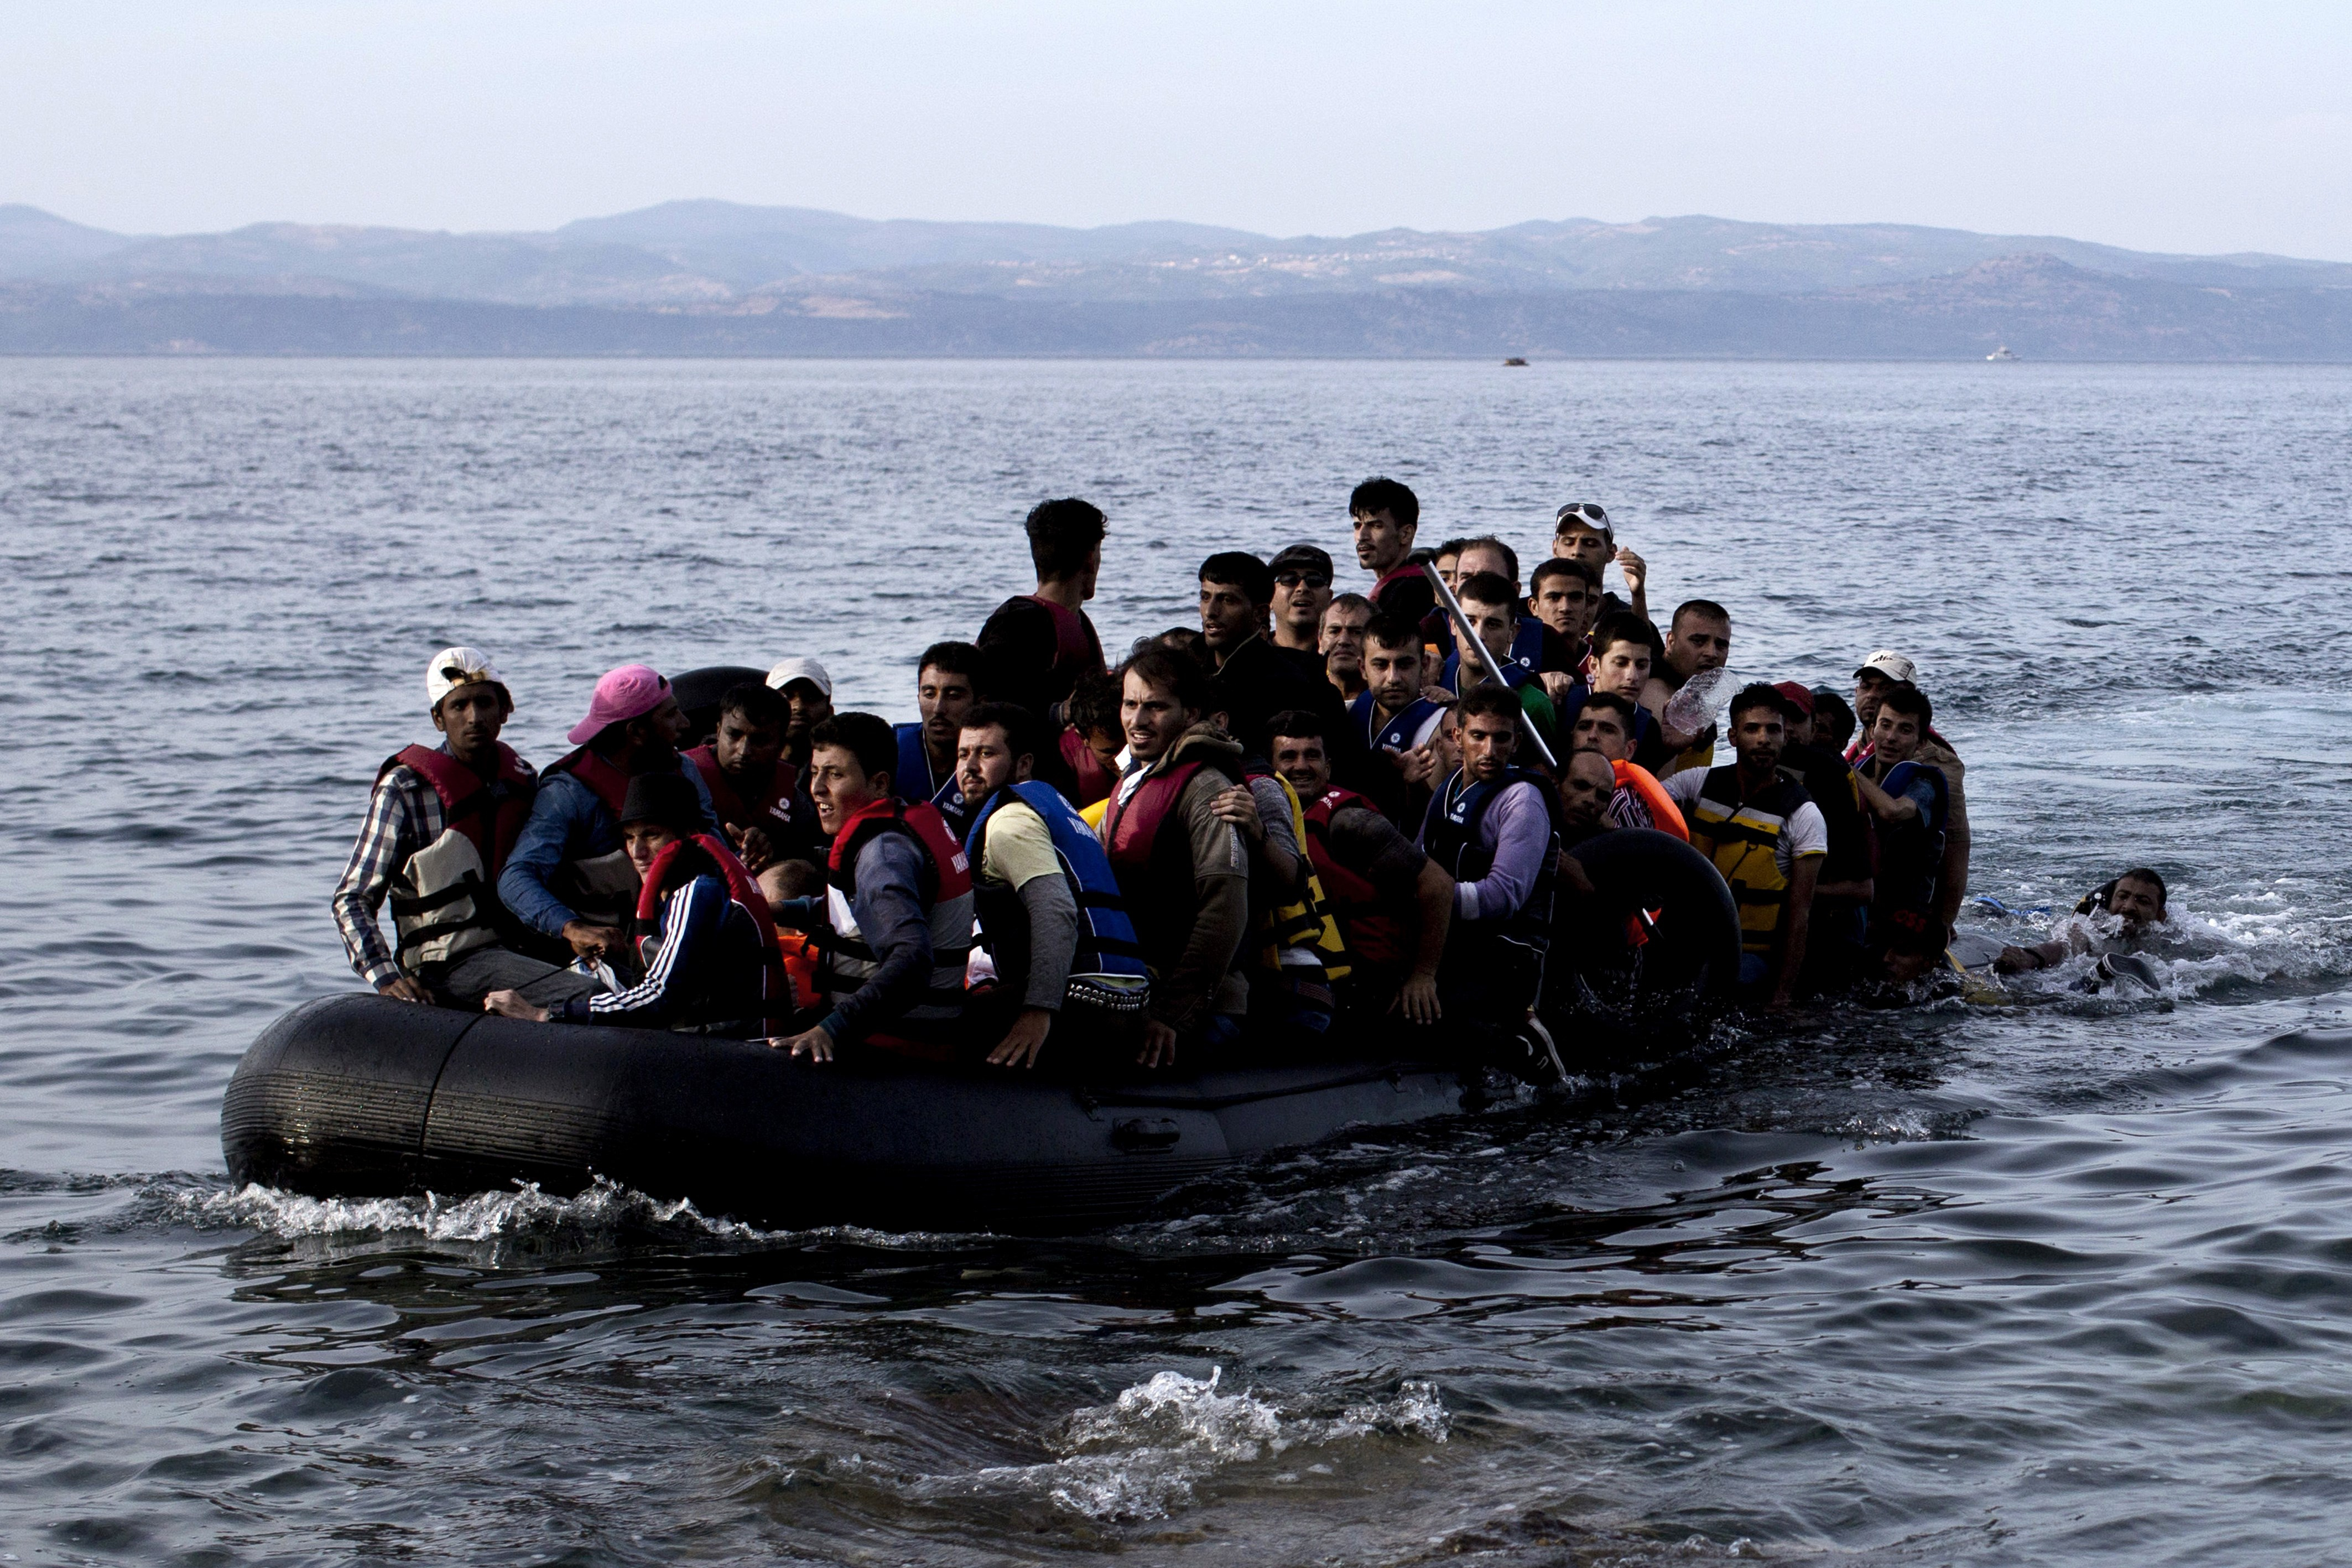 Refugees and migrants arrive on the shores of the Greek island of Lesbos after crossing the Aegean Sea from Turkey on an inflatable boat, Sept. 9, 2015.